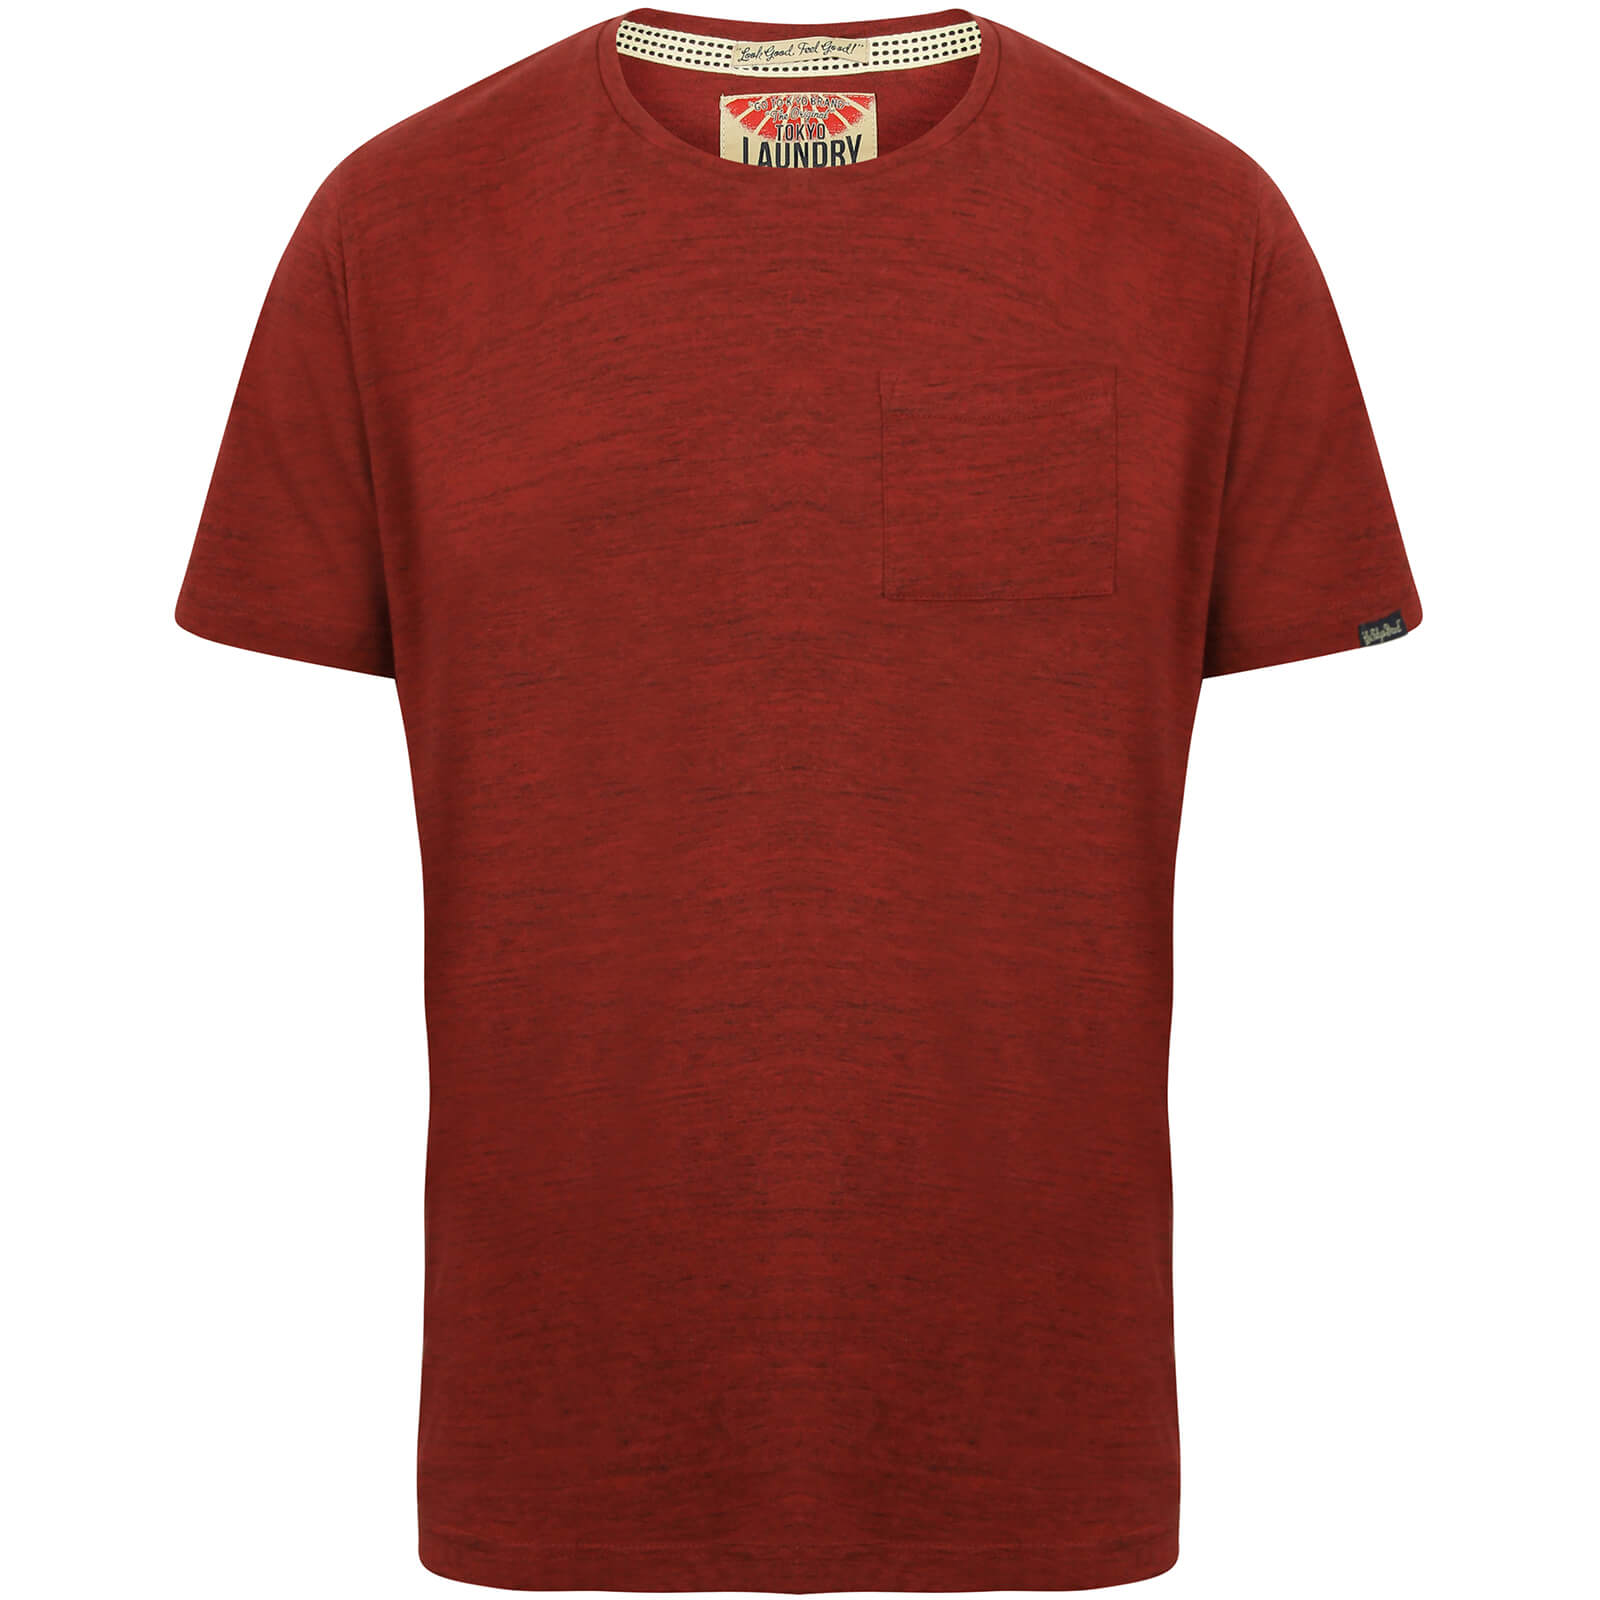 T-Shirt Homme Grotto Tokyo Laundry -Rouge